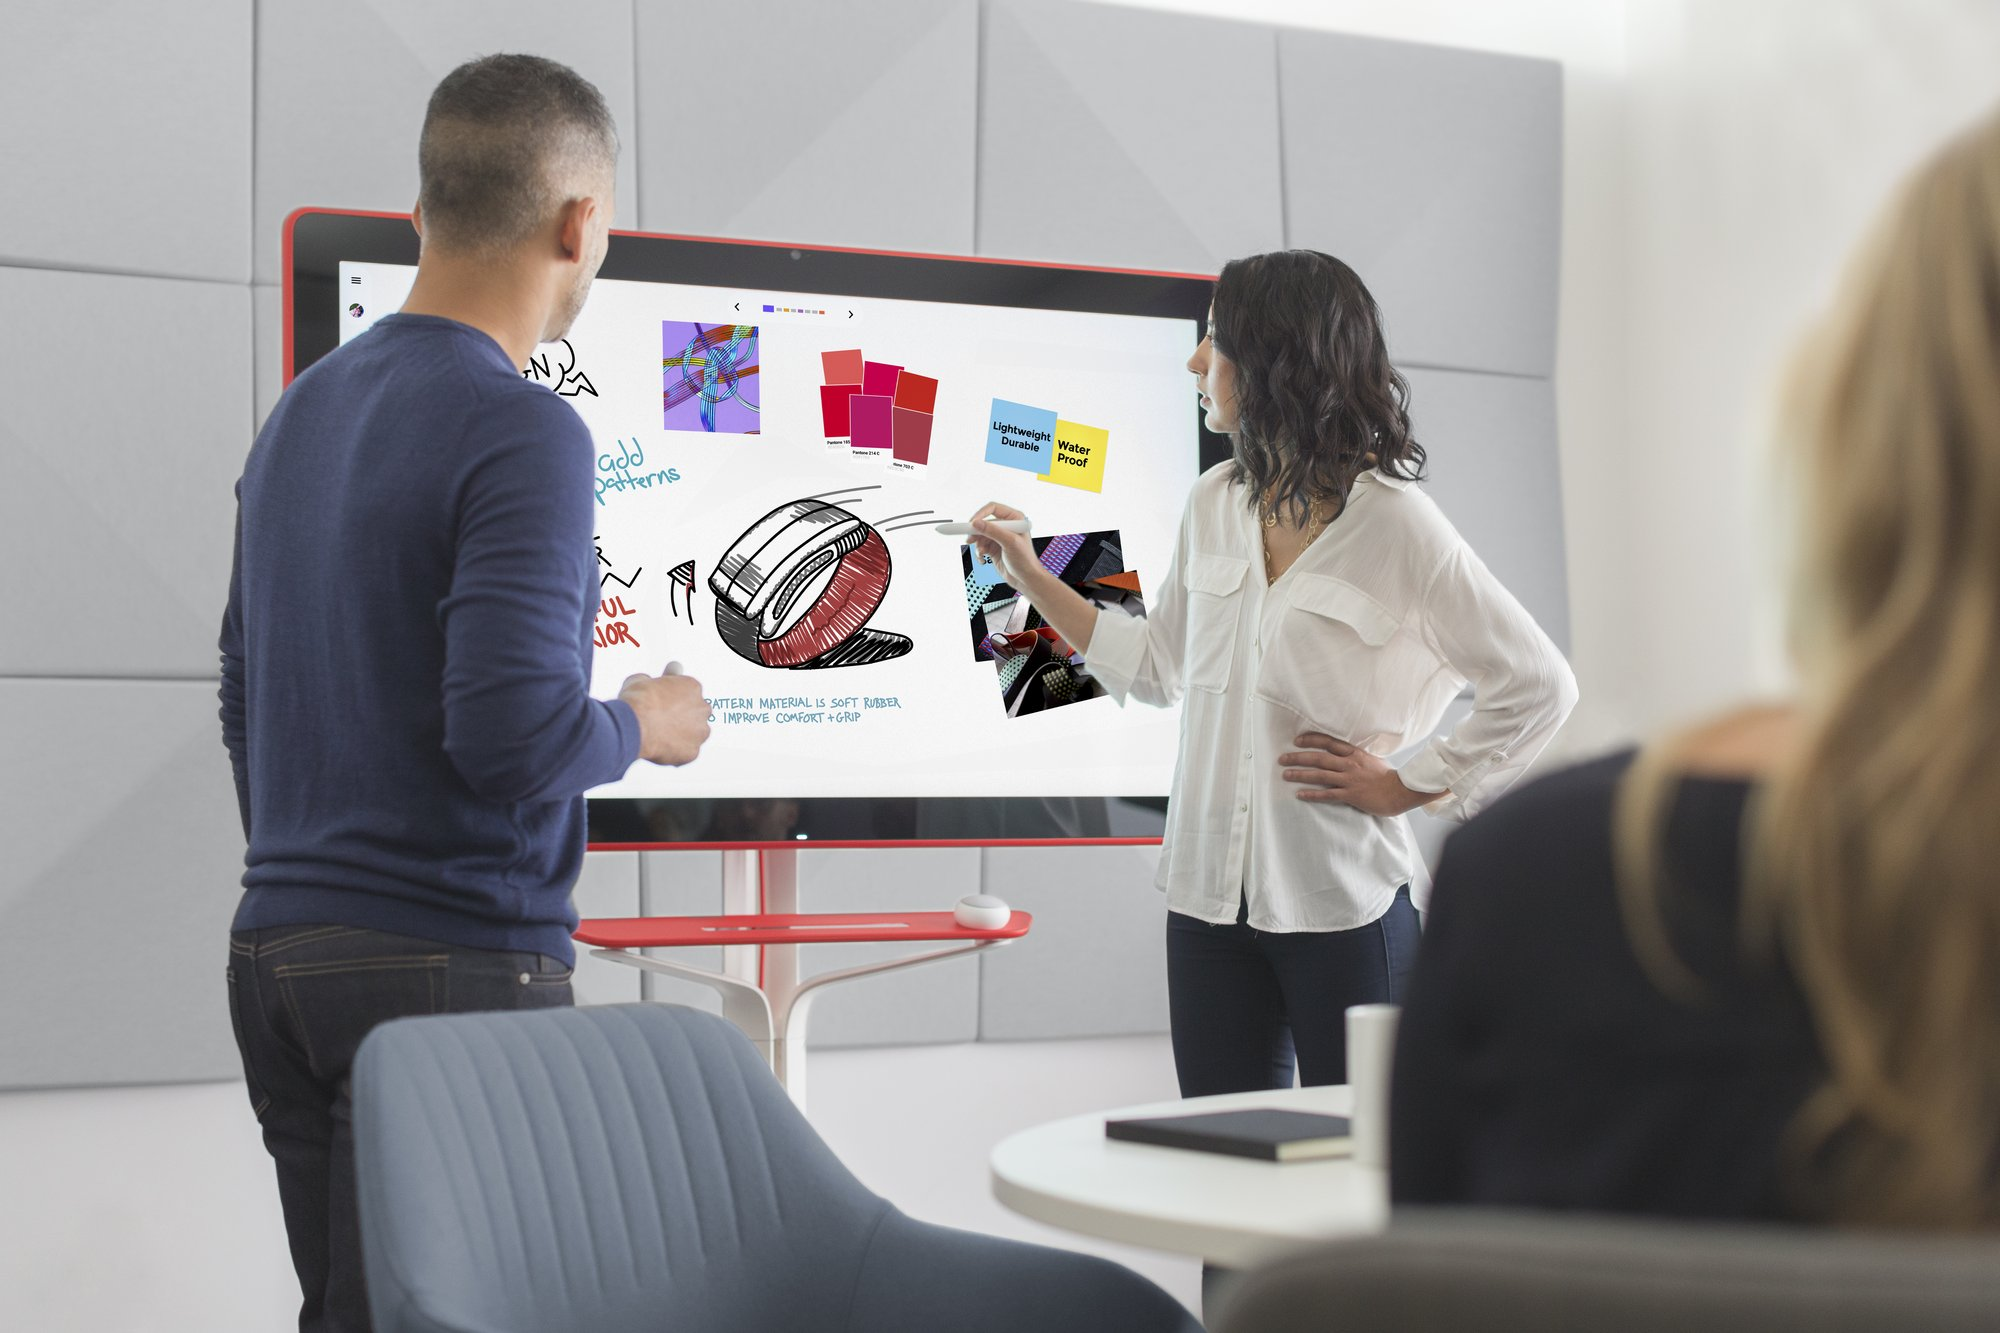 Google Jamboard Sets the Collaboration Bar High at InfoComm 2017